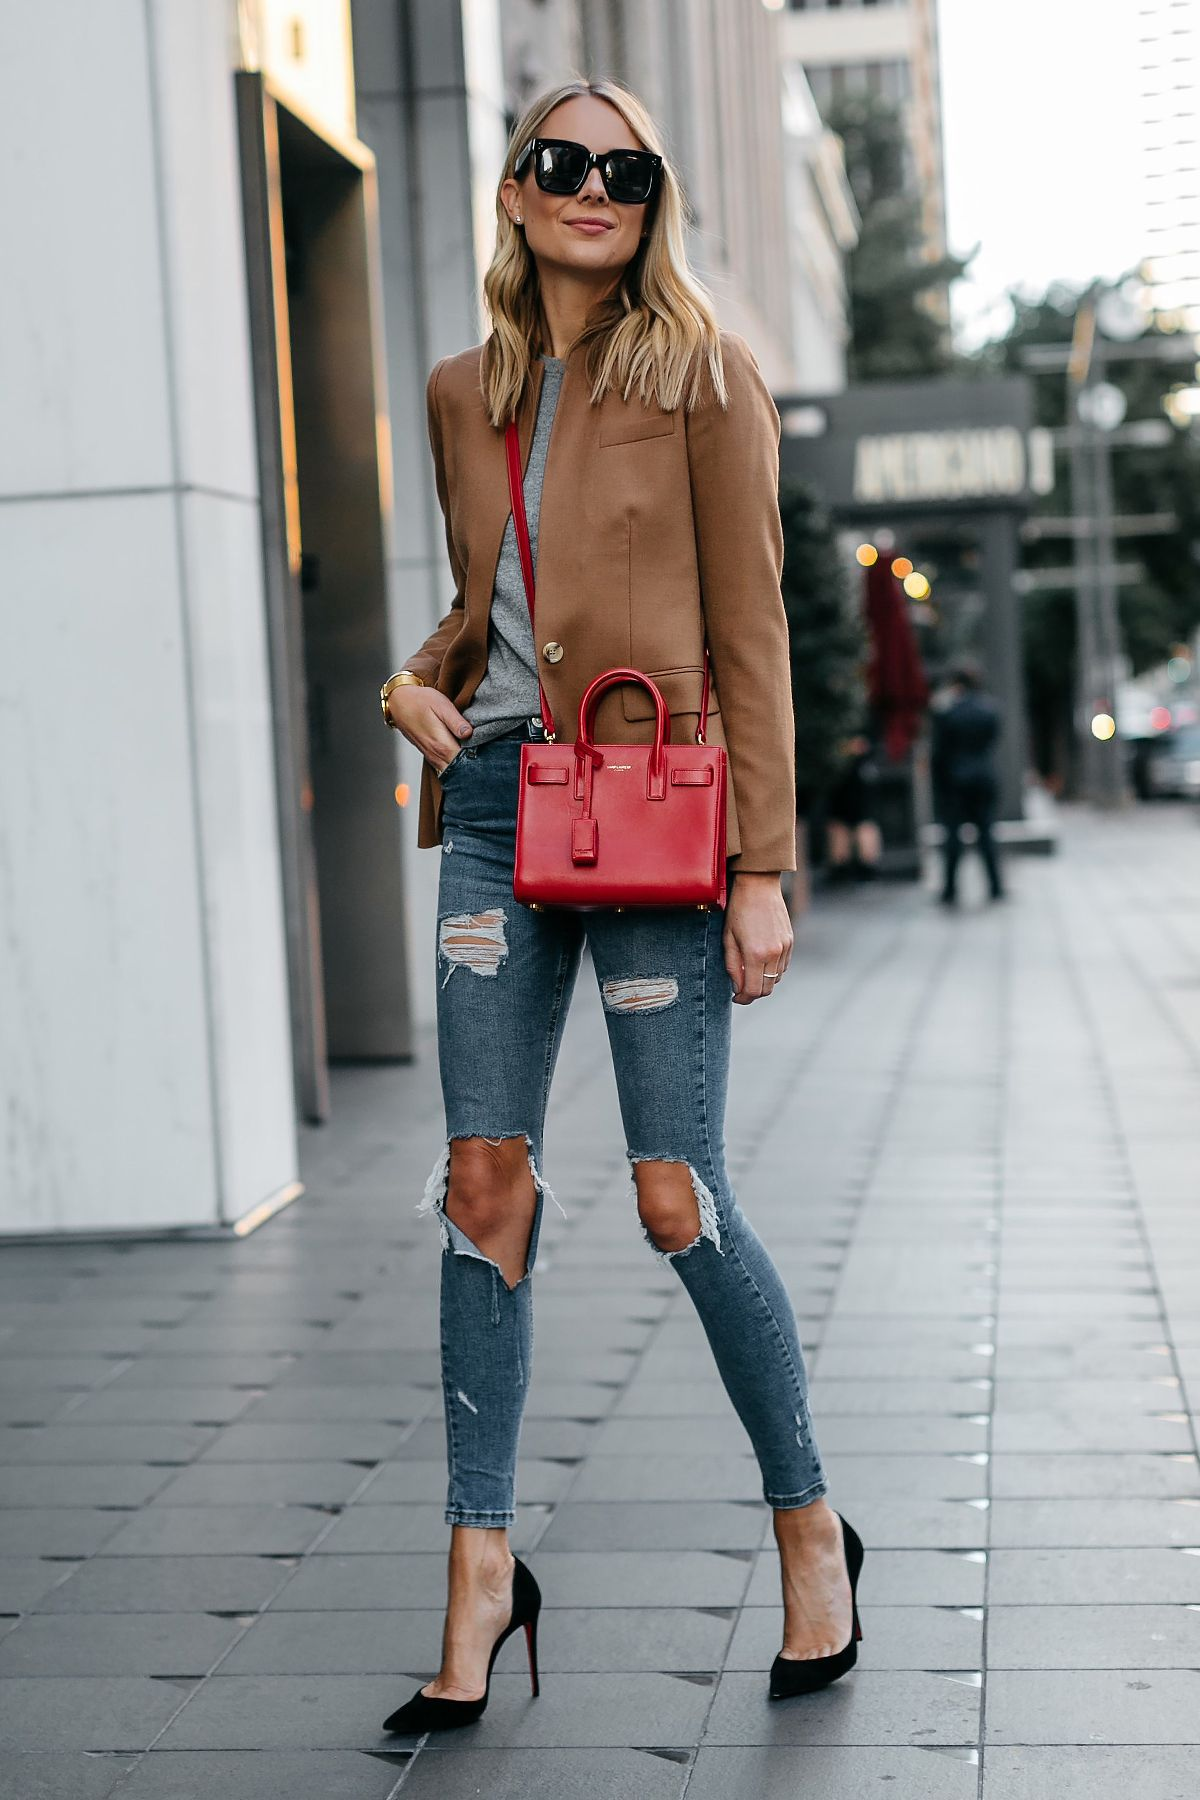 Blonde Woman Wearing Jcrew Camel Blazer Grey Sweater Ripped Denim Jeans  Black Pumps Saint Laurent Sac